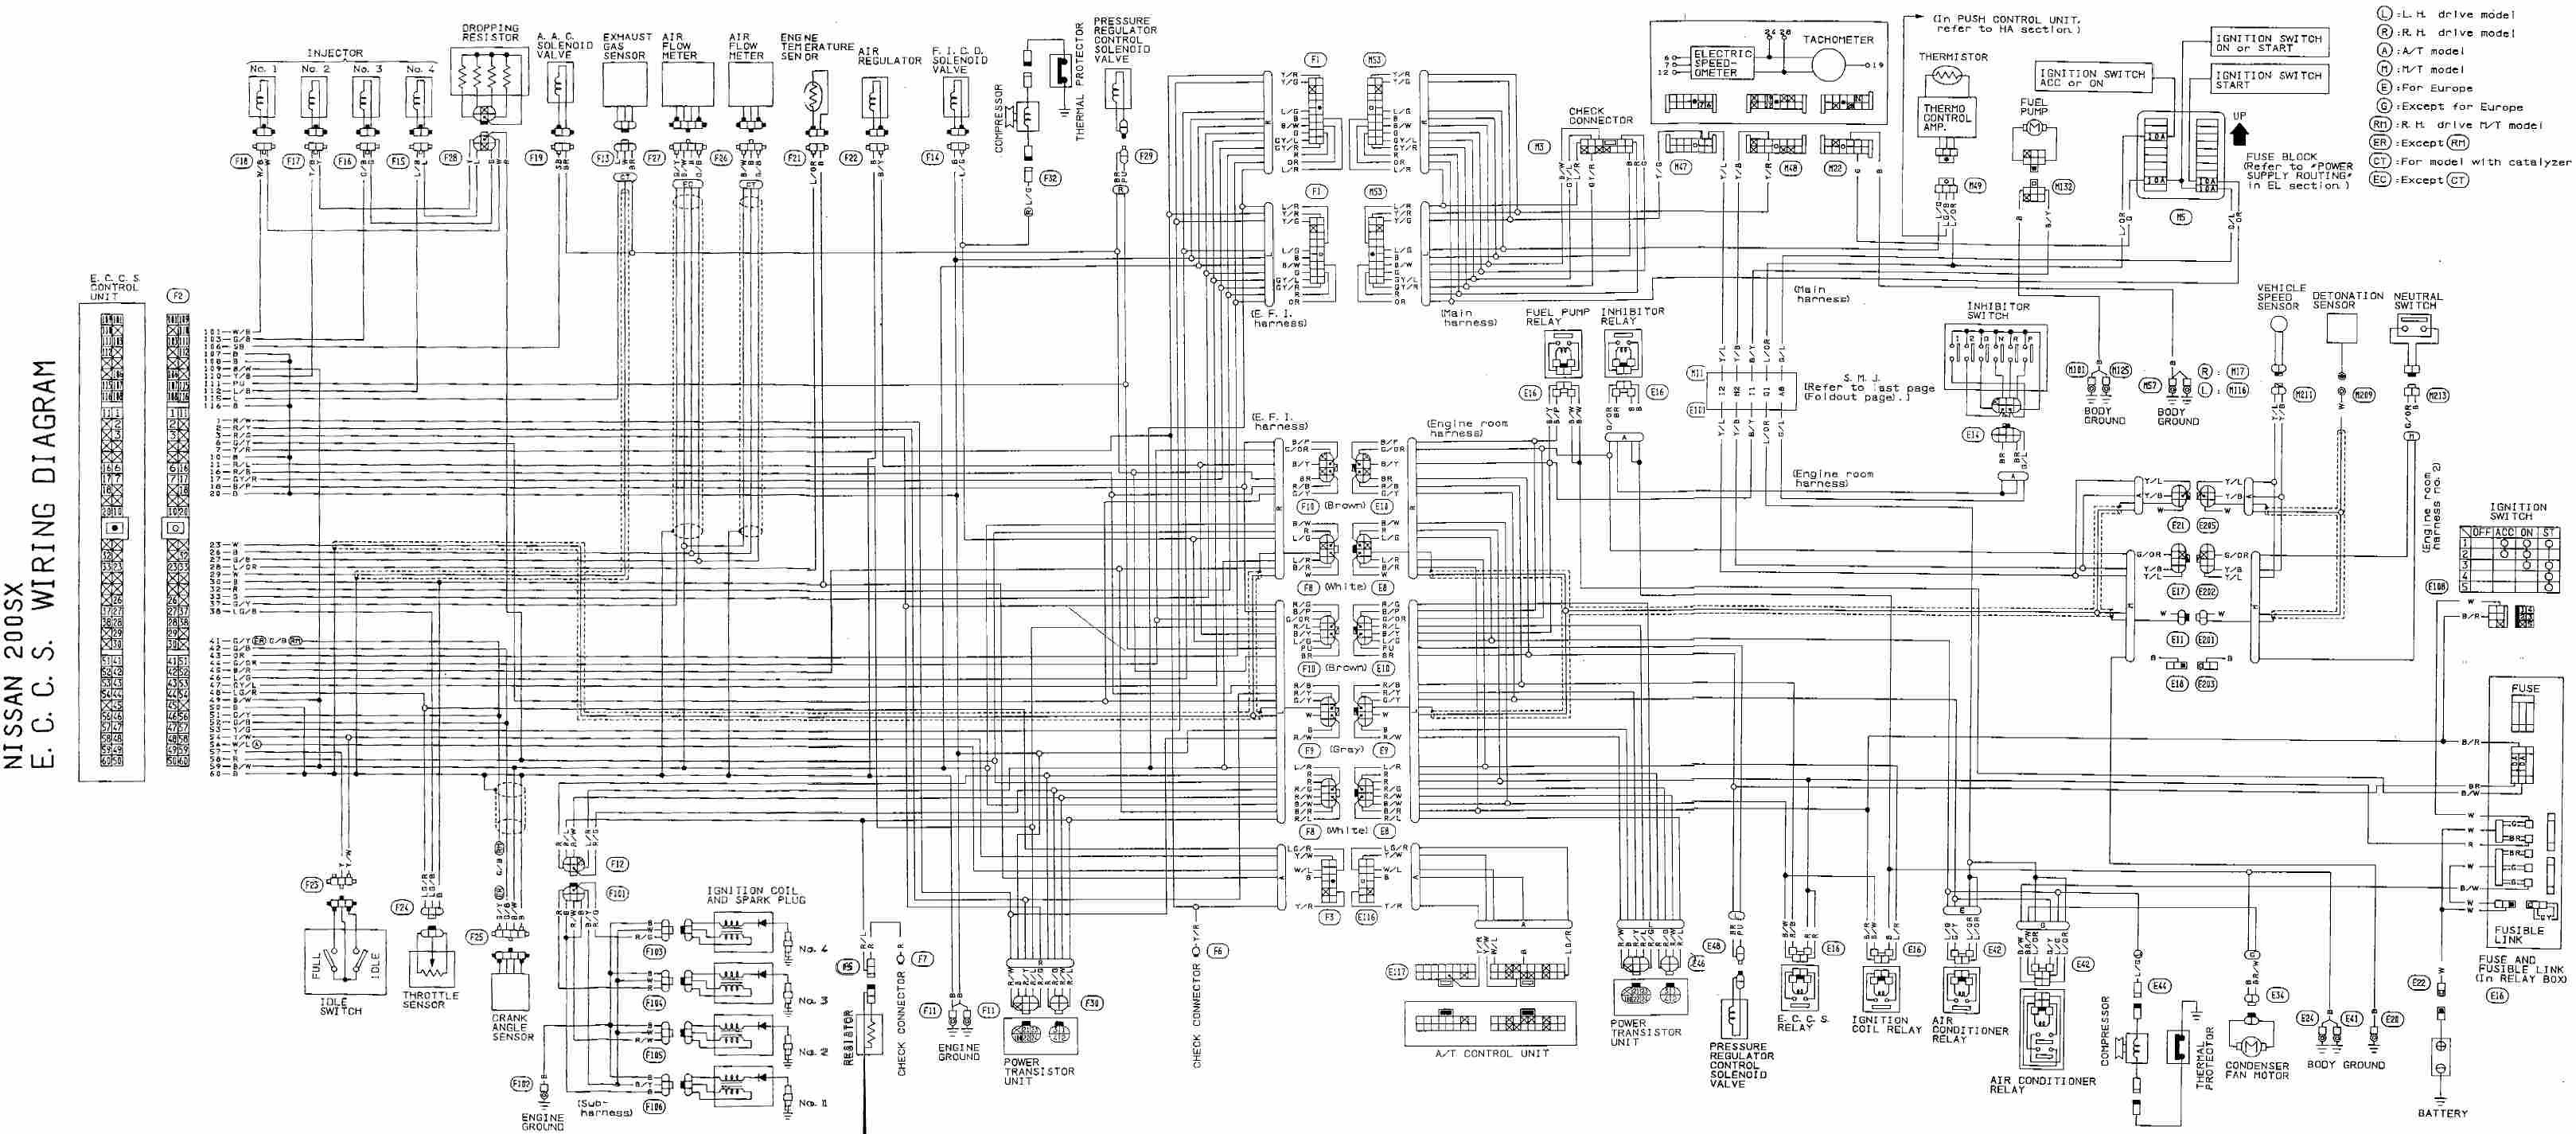 wiring diagram for nissan micra k11